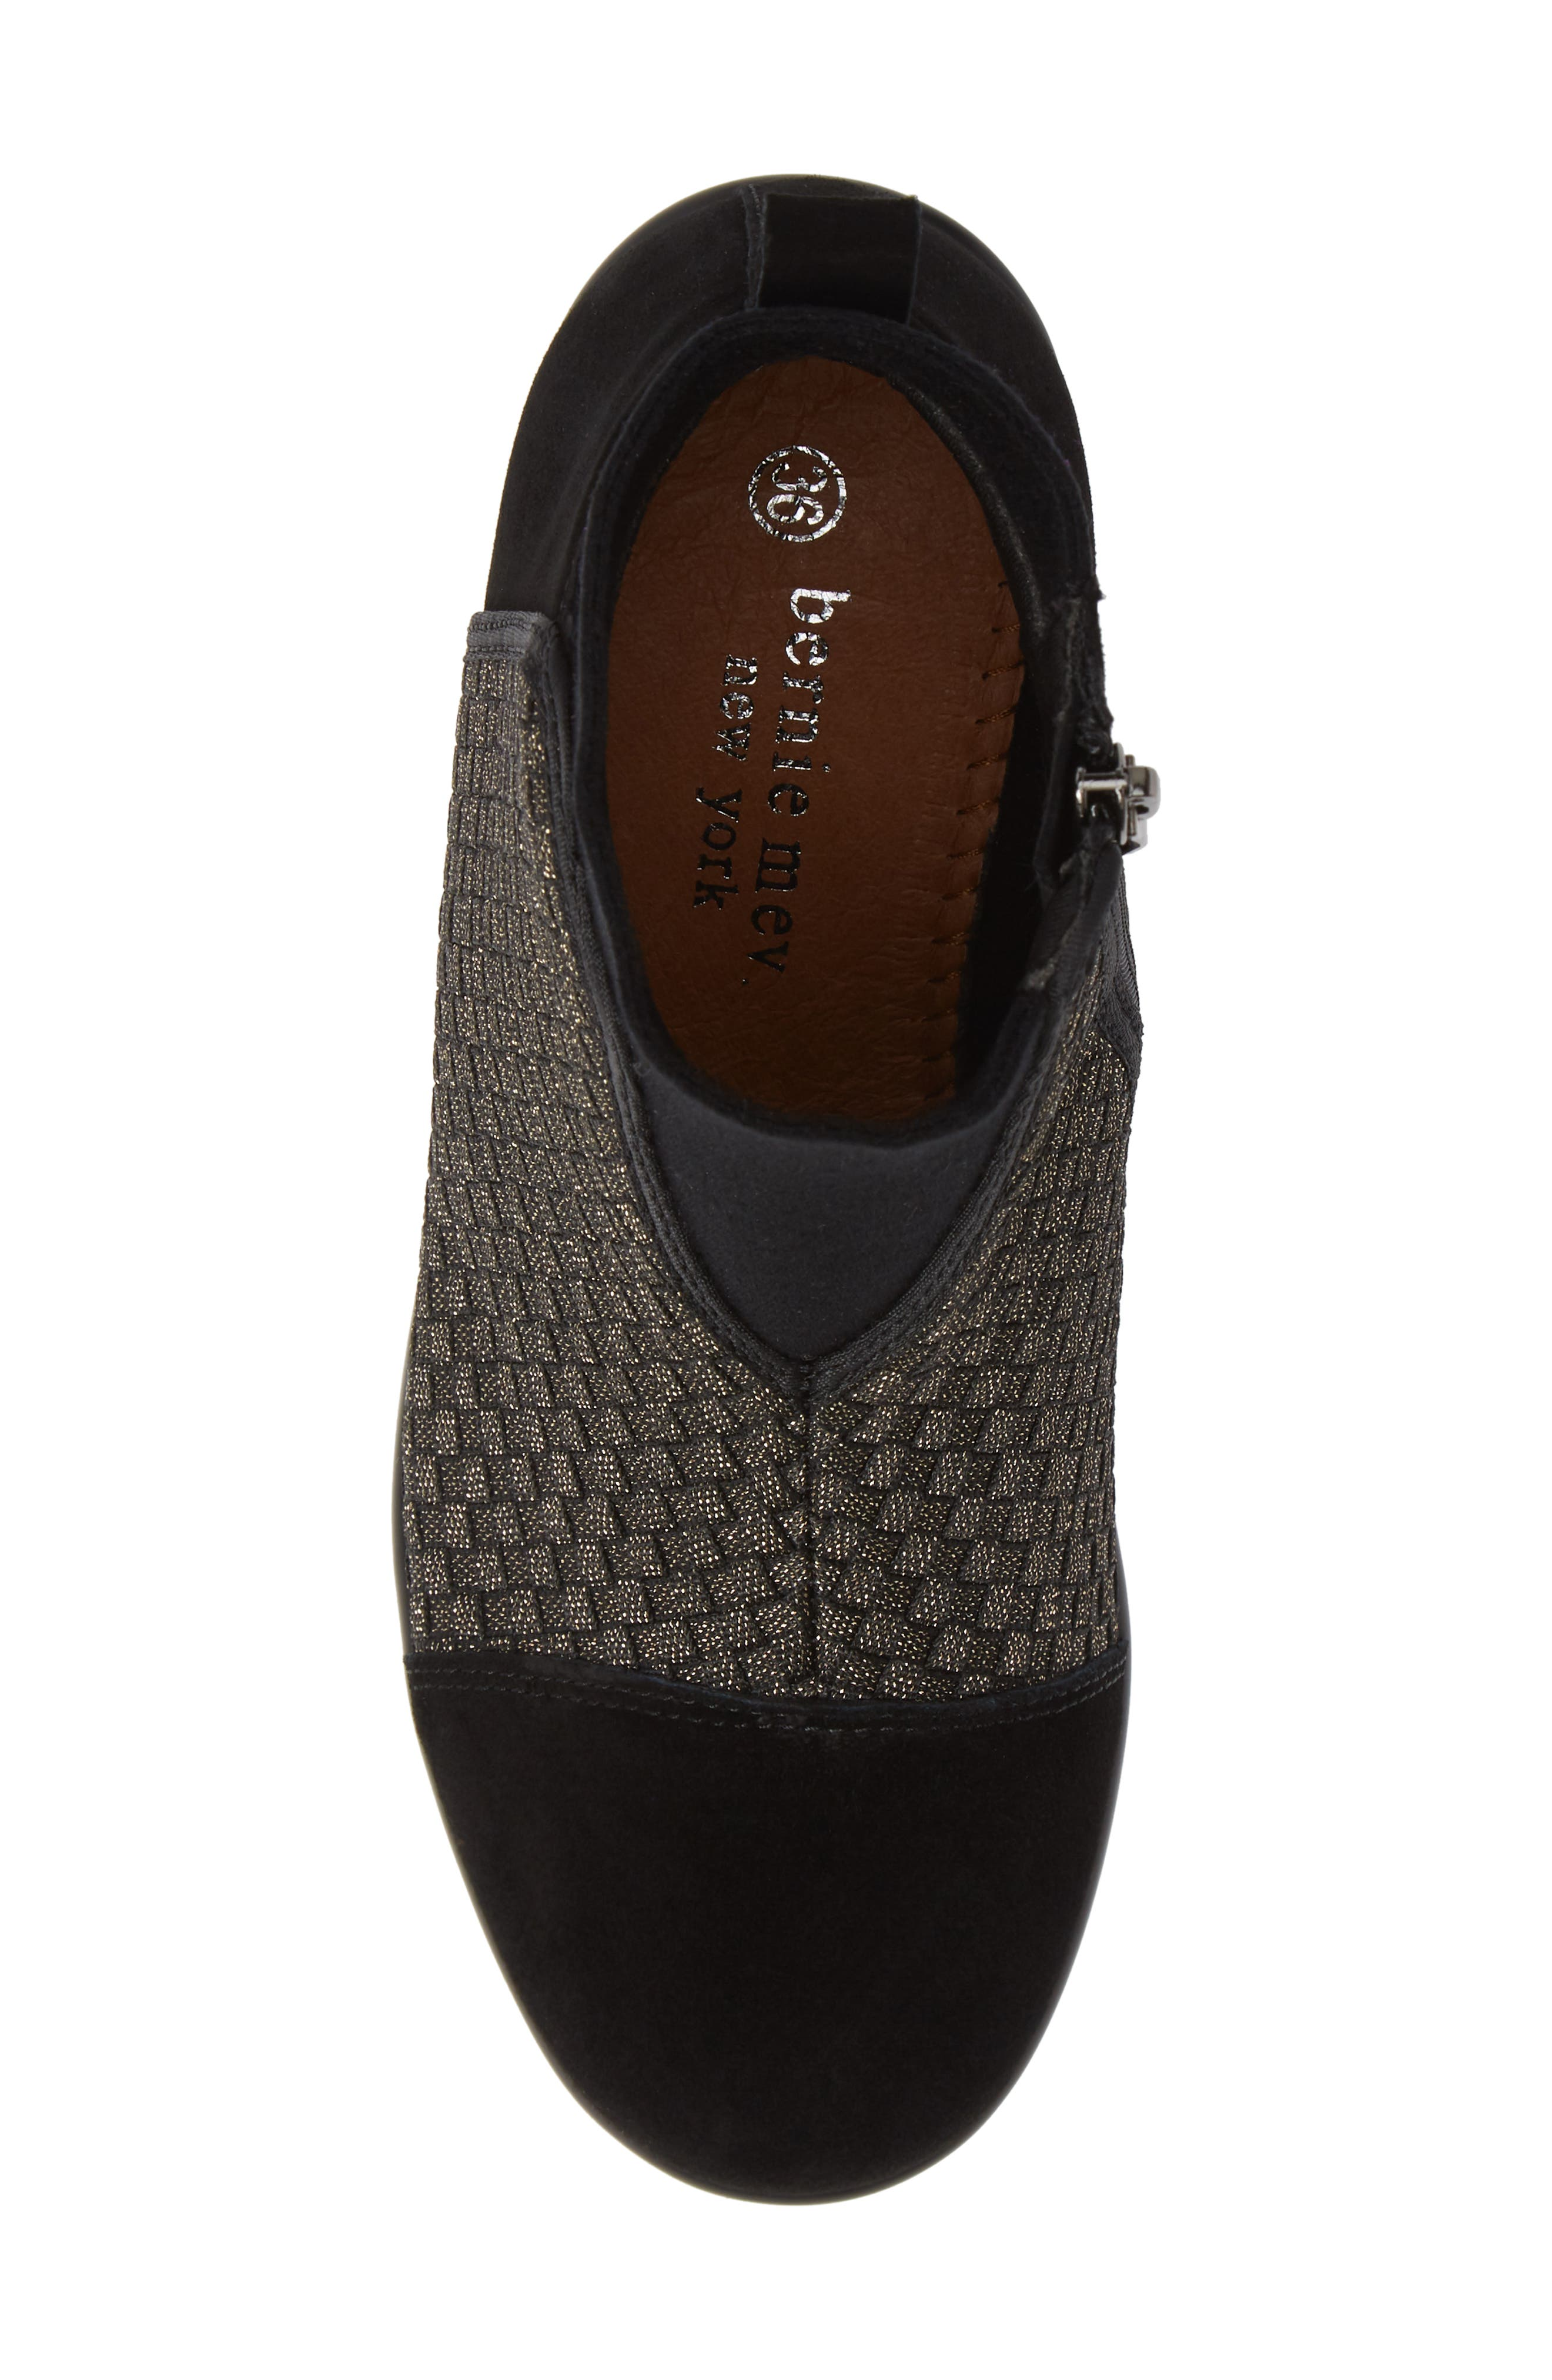 Zoe Wedge Bootie,                             Alternate thumbnail 5, color,                             GOLD BLACK SHIMMER LEATHER